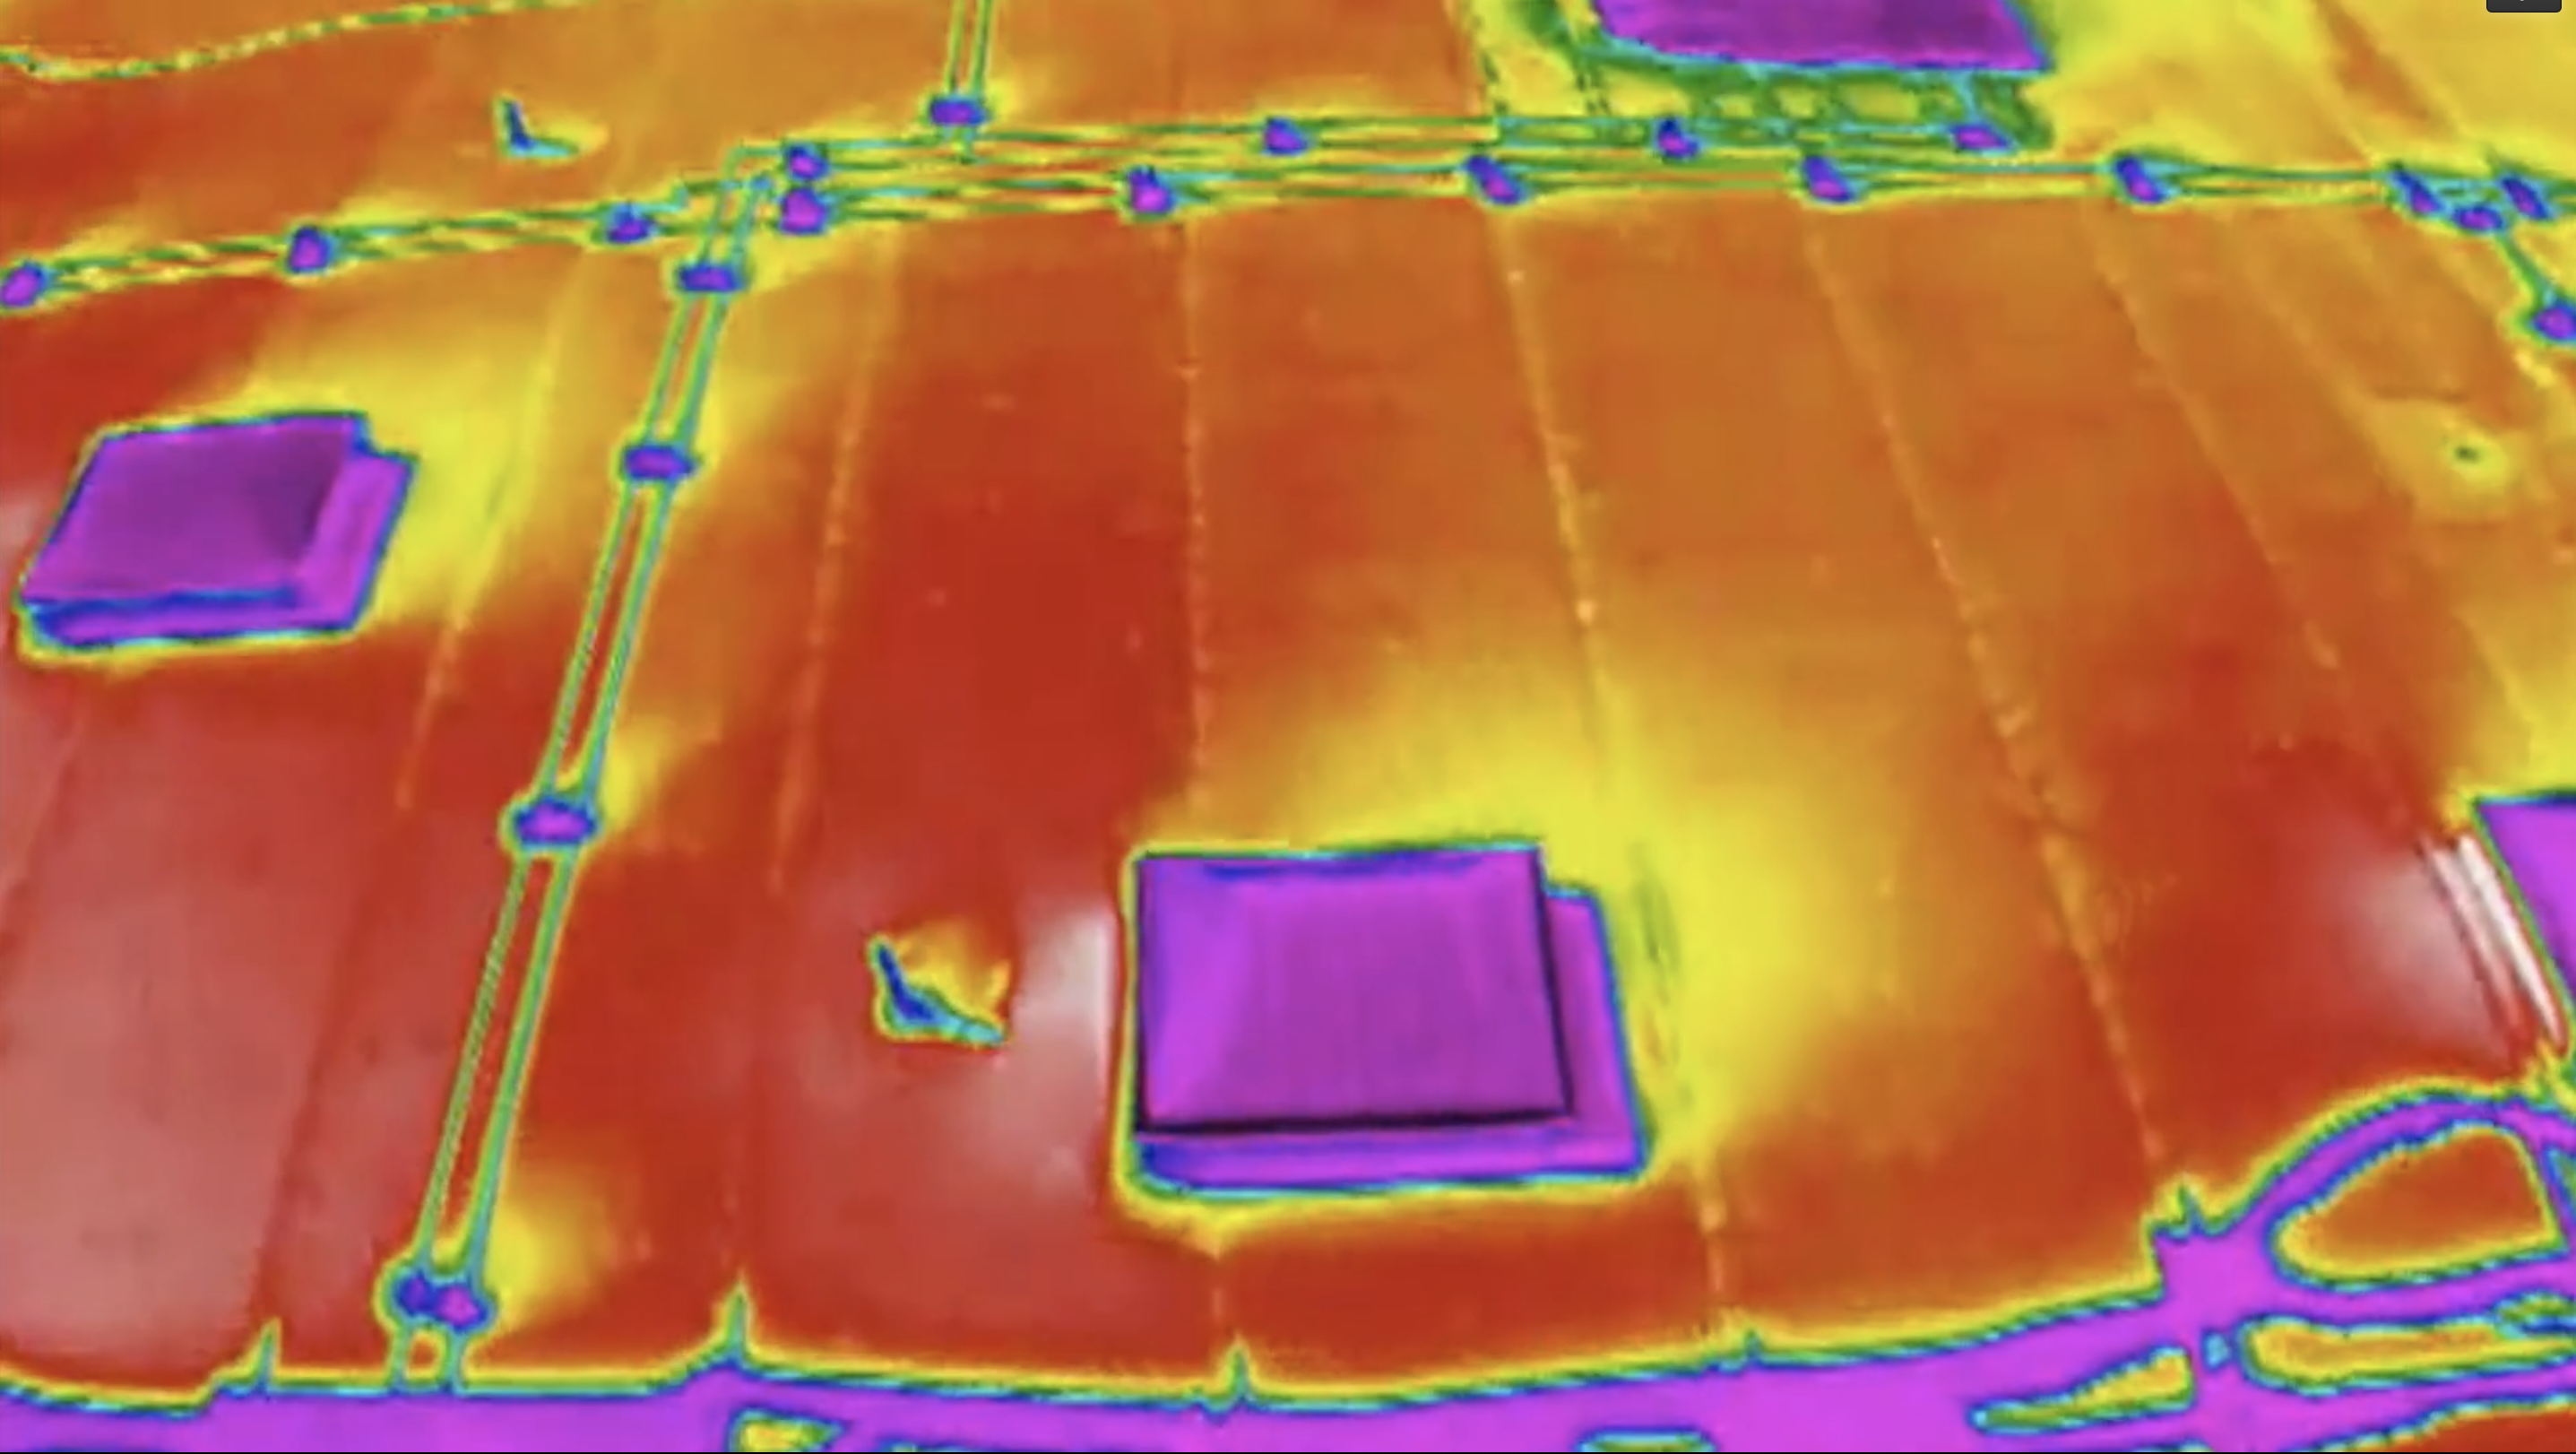 thermal aerial image captured from a drone